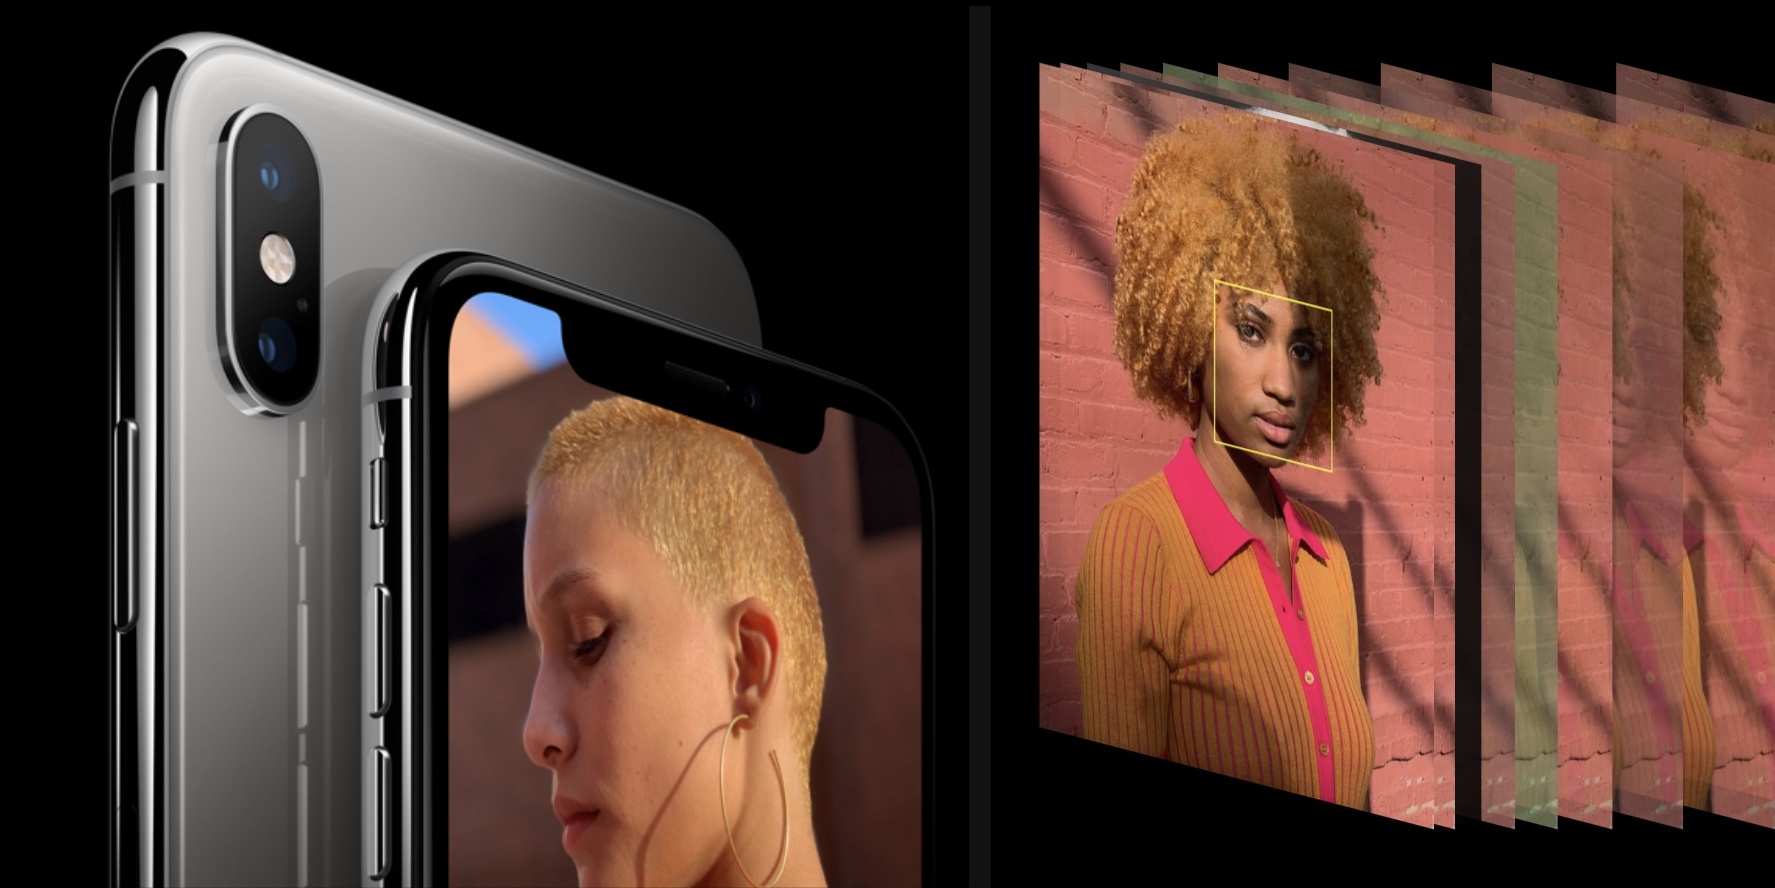 iPhone XS Max takes 4th spot in new DxOMark selfie camera ranking